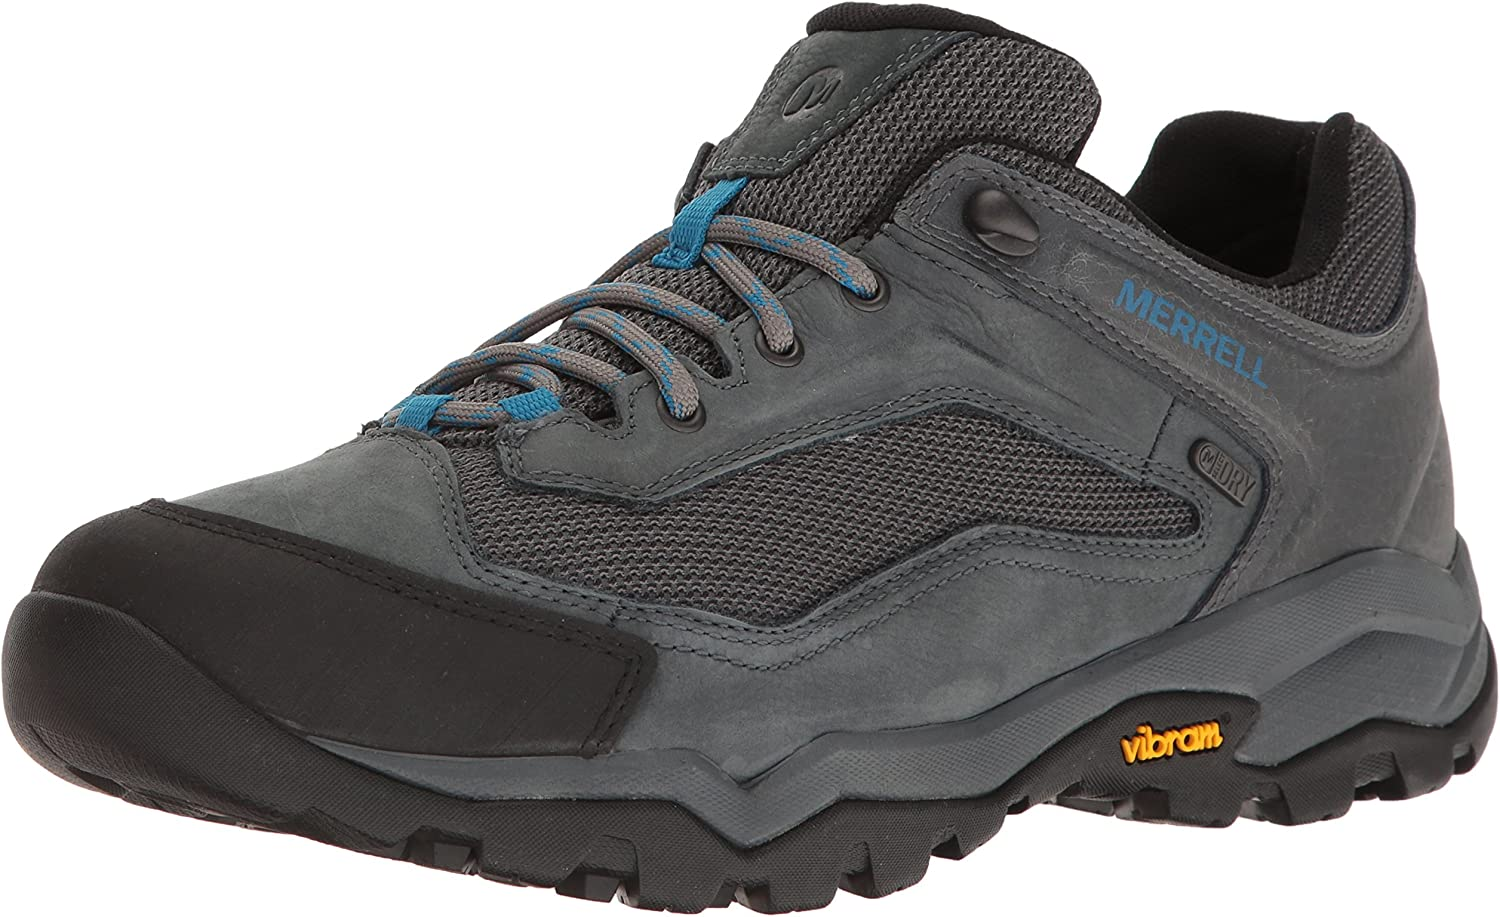 Merrell Men's Everbound Vent Waterproof Backpacking Boot